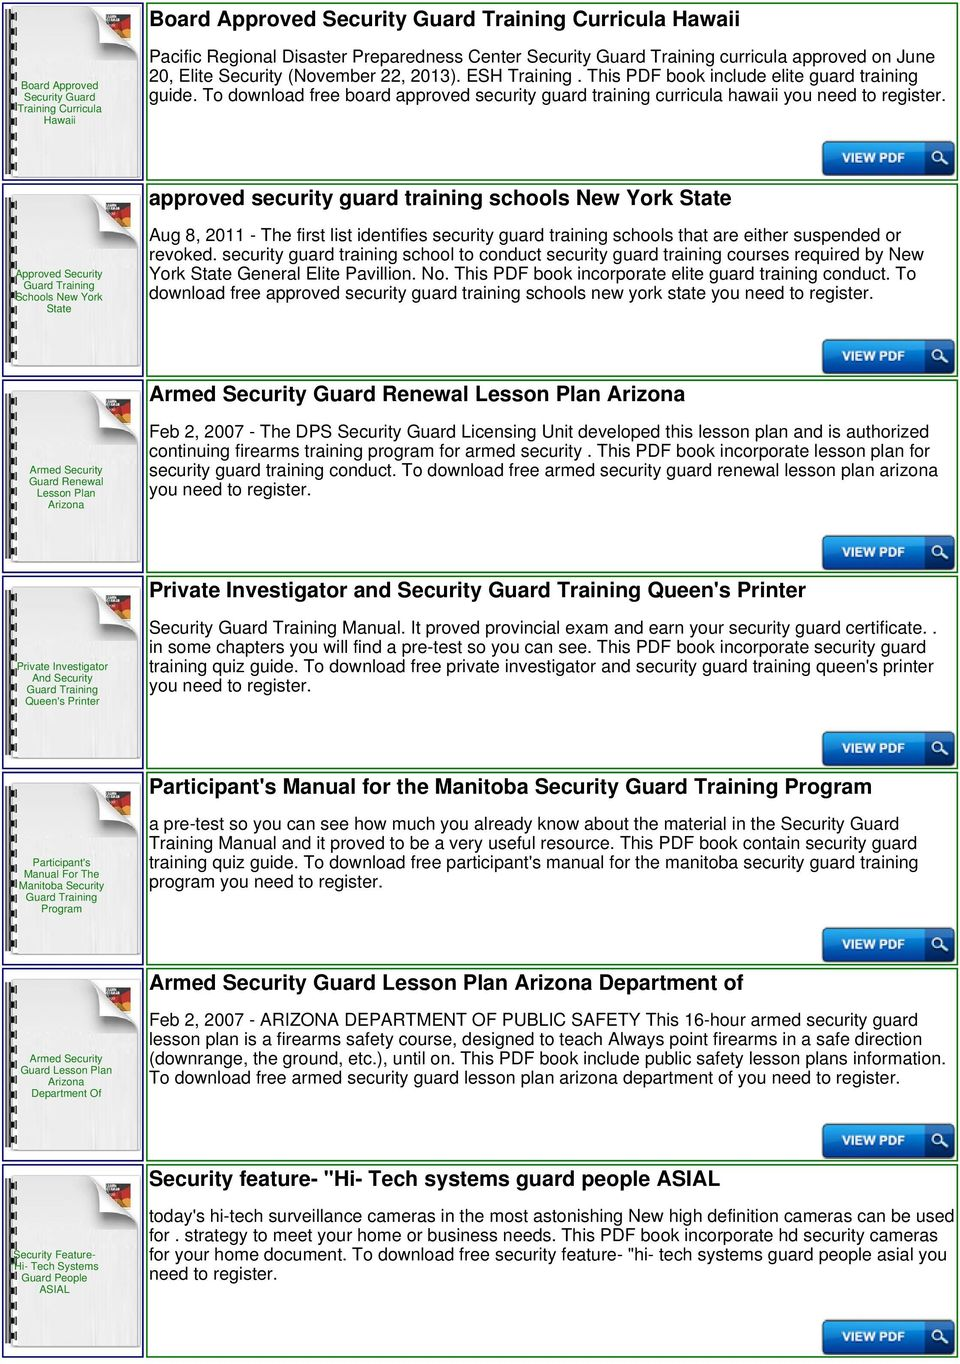 To download free board approved security guard training curricula hawaii  you need to approved security guard